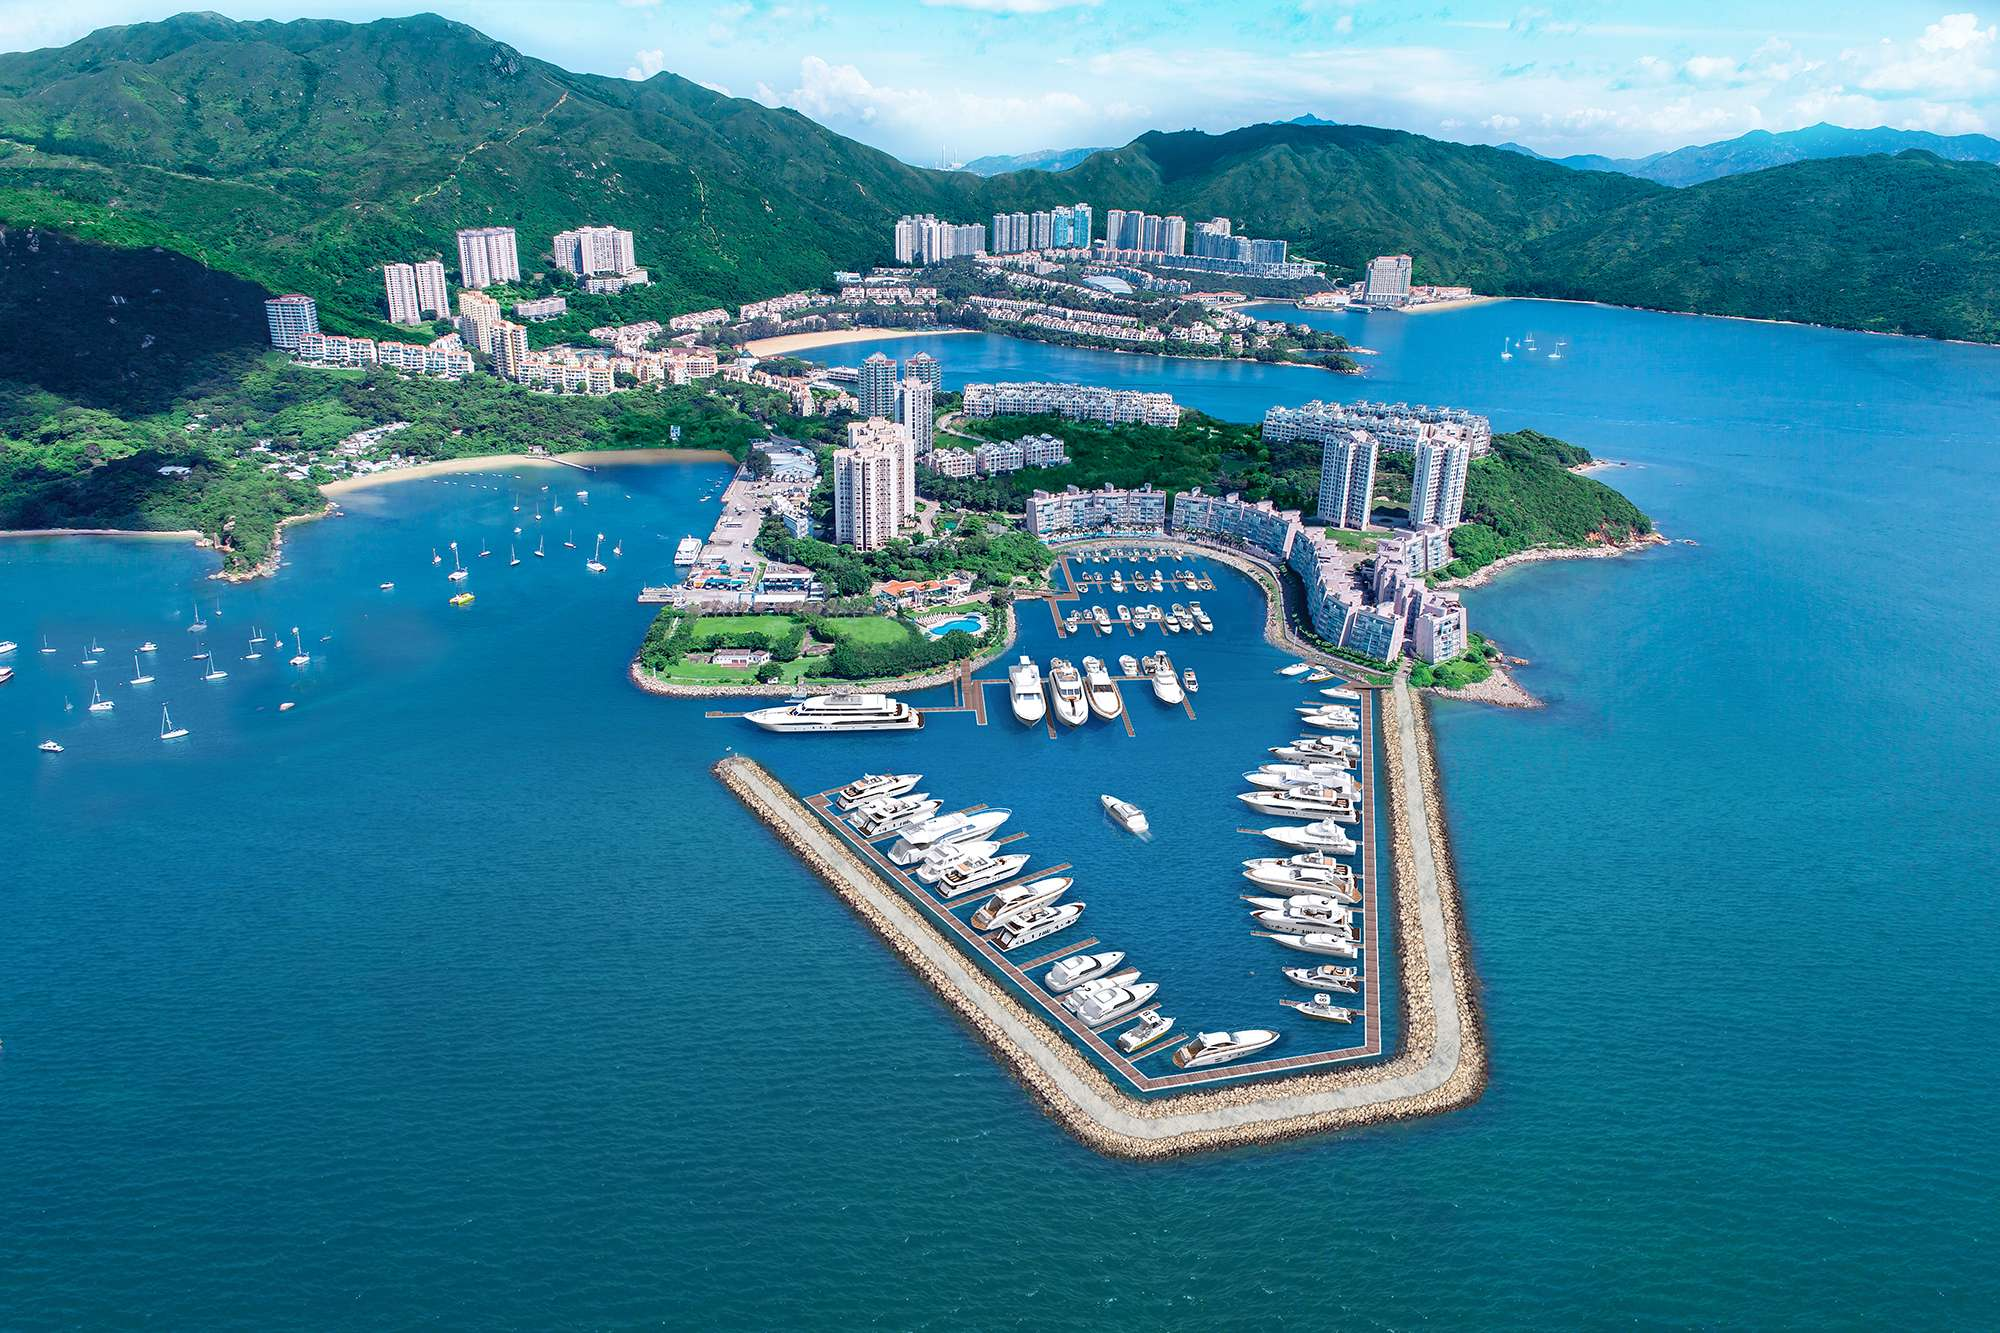 Lantau Yacht Club - the first and only custom-built marina in Hong Kong that can cater to specific needs of megayachts.